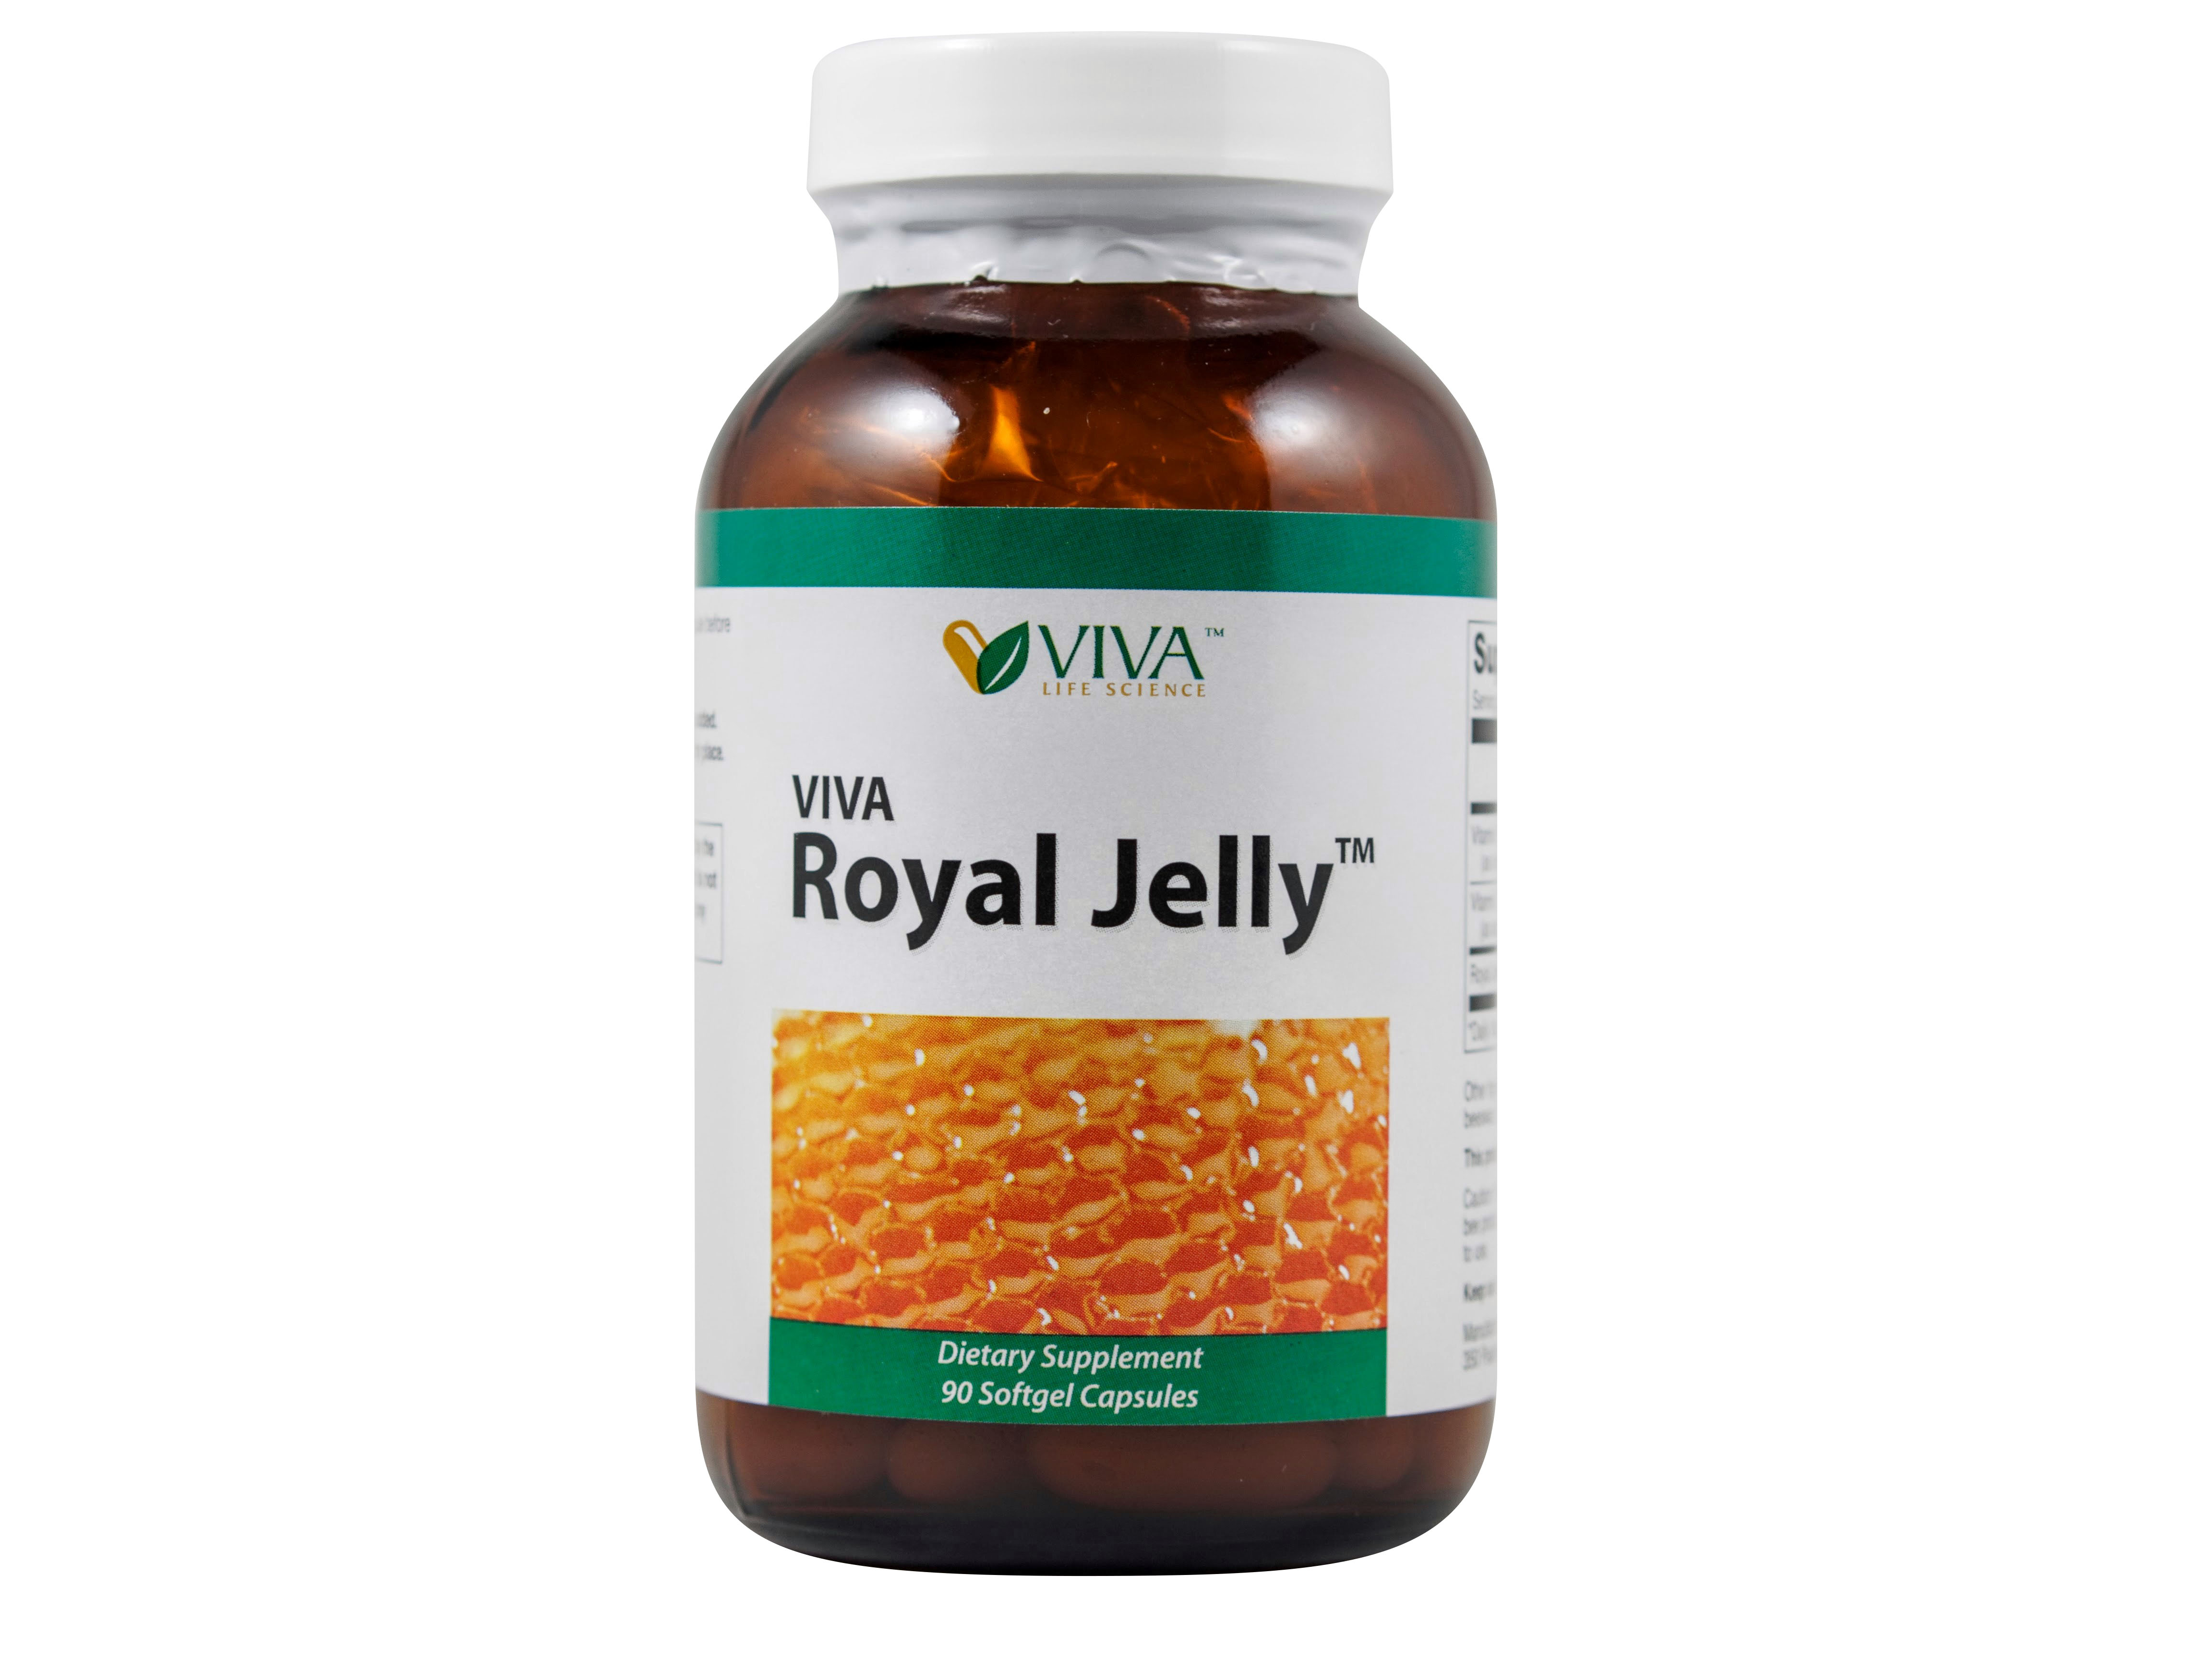 VIVA Royal Jelly™ - (90 softgels) Promo[6+1]